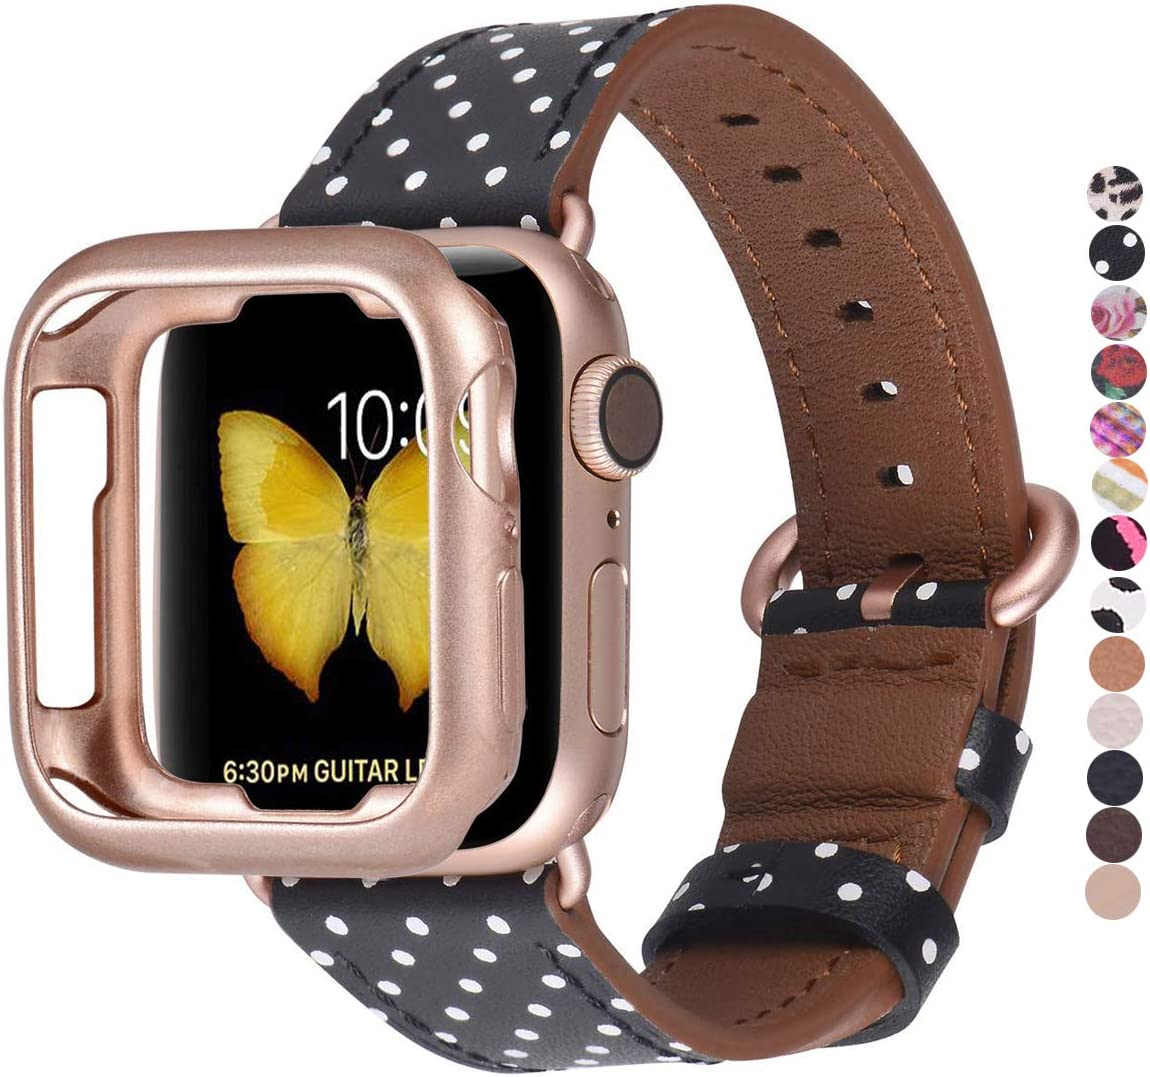 JSGJMY Compatible with Apple Watch Band 38mm 40mm with Case,Women Genuine Leather Strap with Rose Gold Clasp for iwatch Series 5/4/3/2/1, Black & White Polka Dot